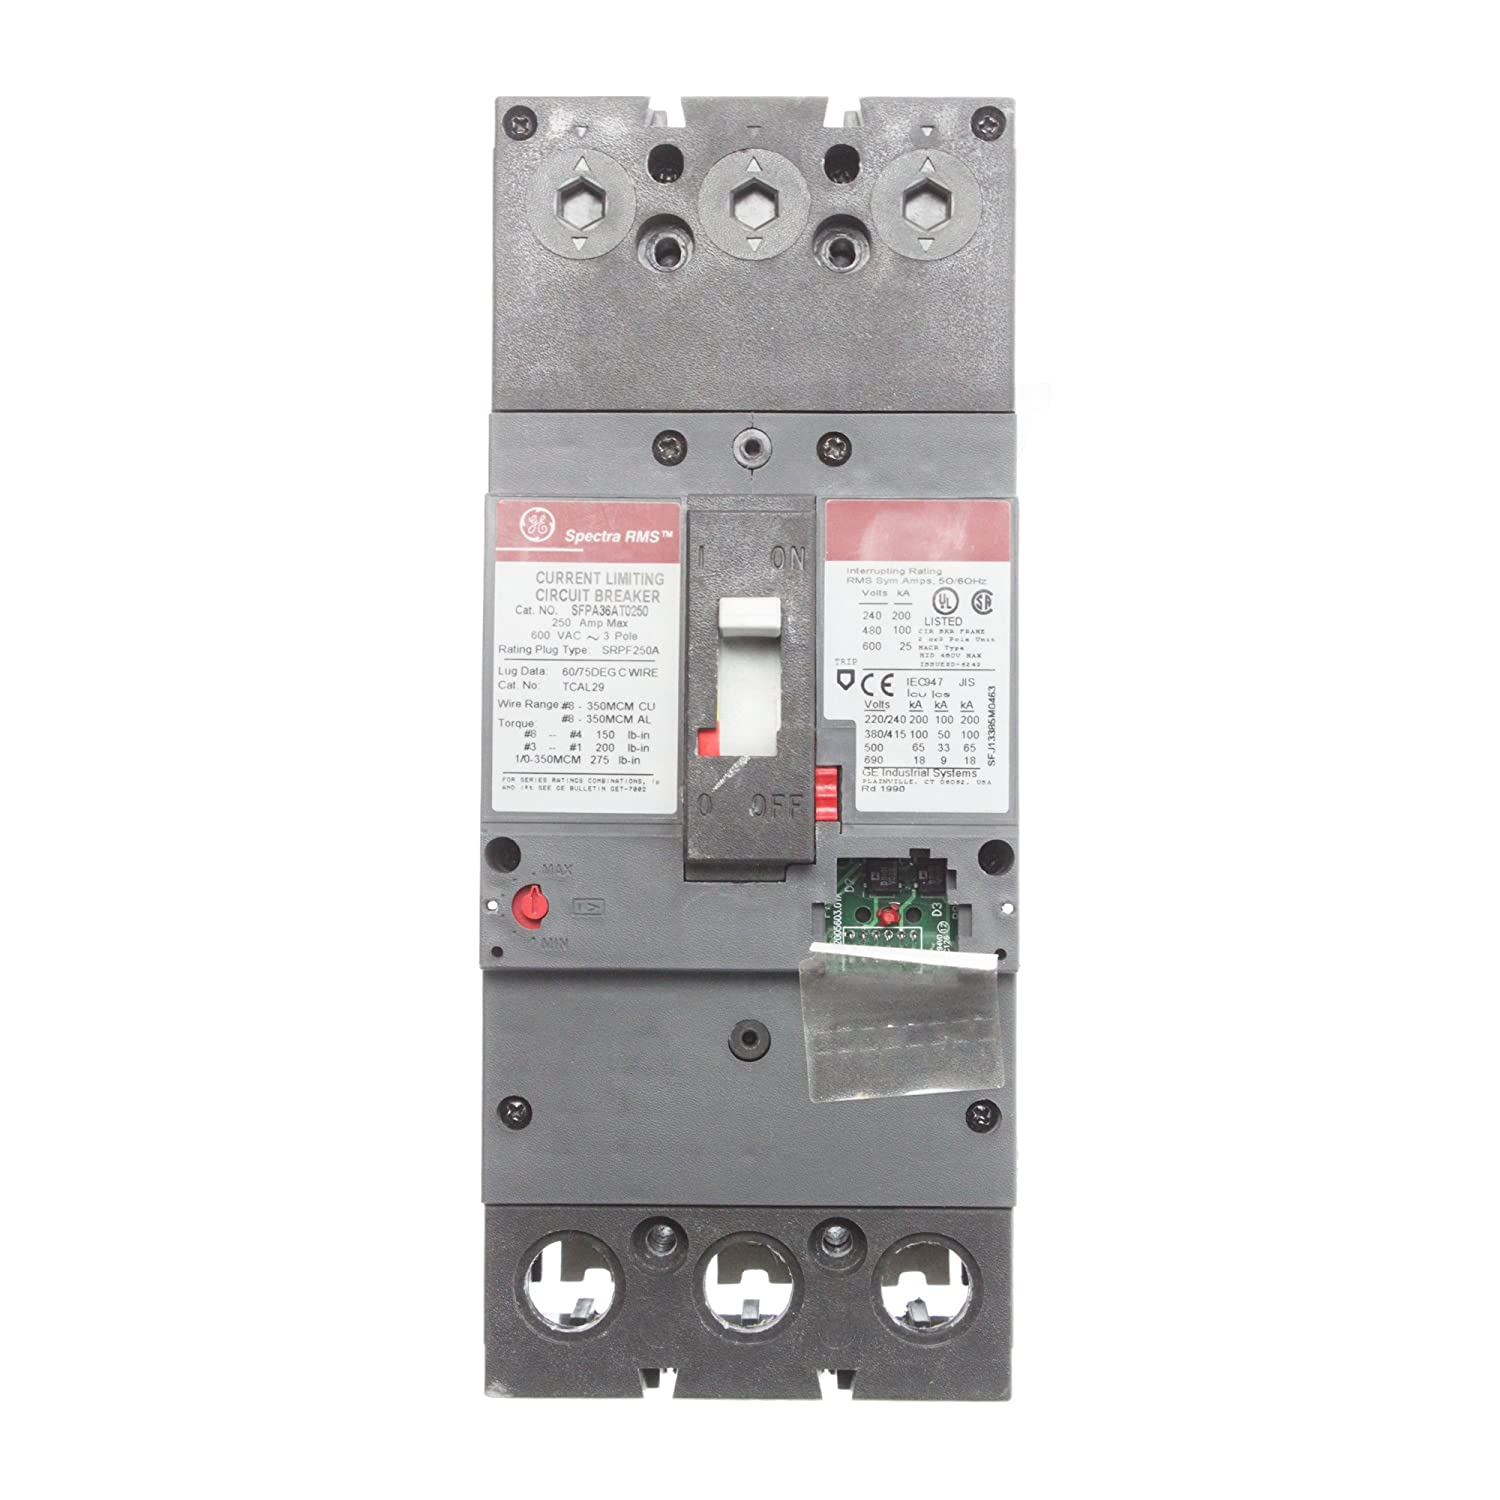 Ge Sfpa36at0250 Current Limiting Circuit Breaker 250 Amp 3 Pole 600 Volt Breakers